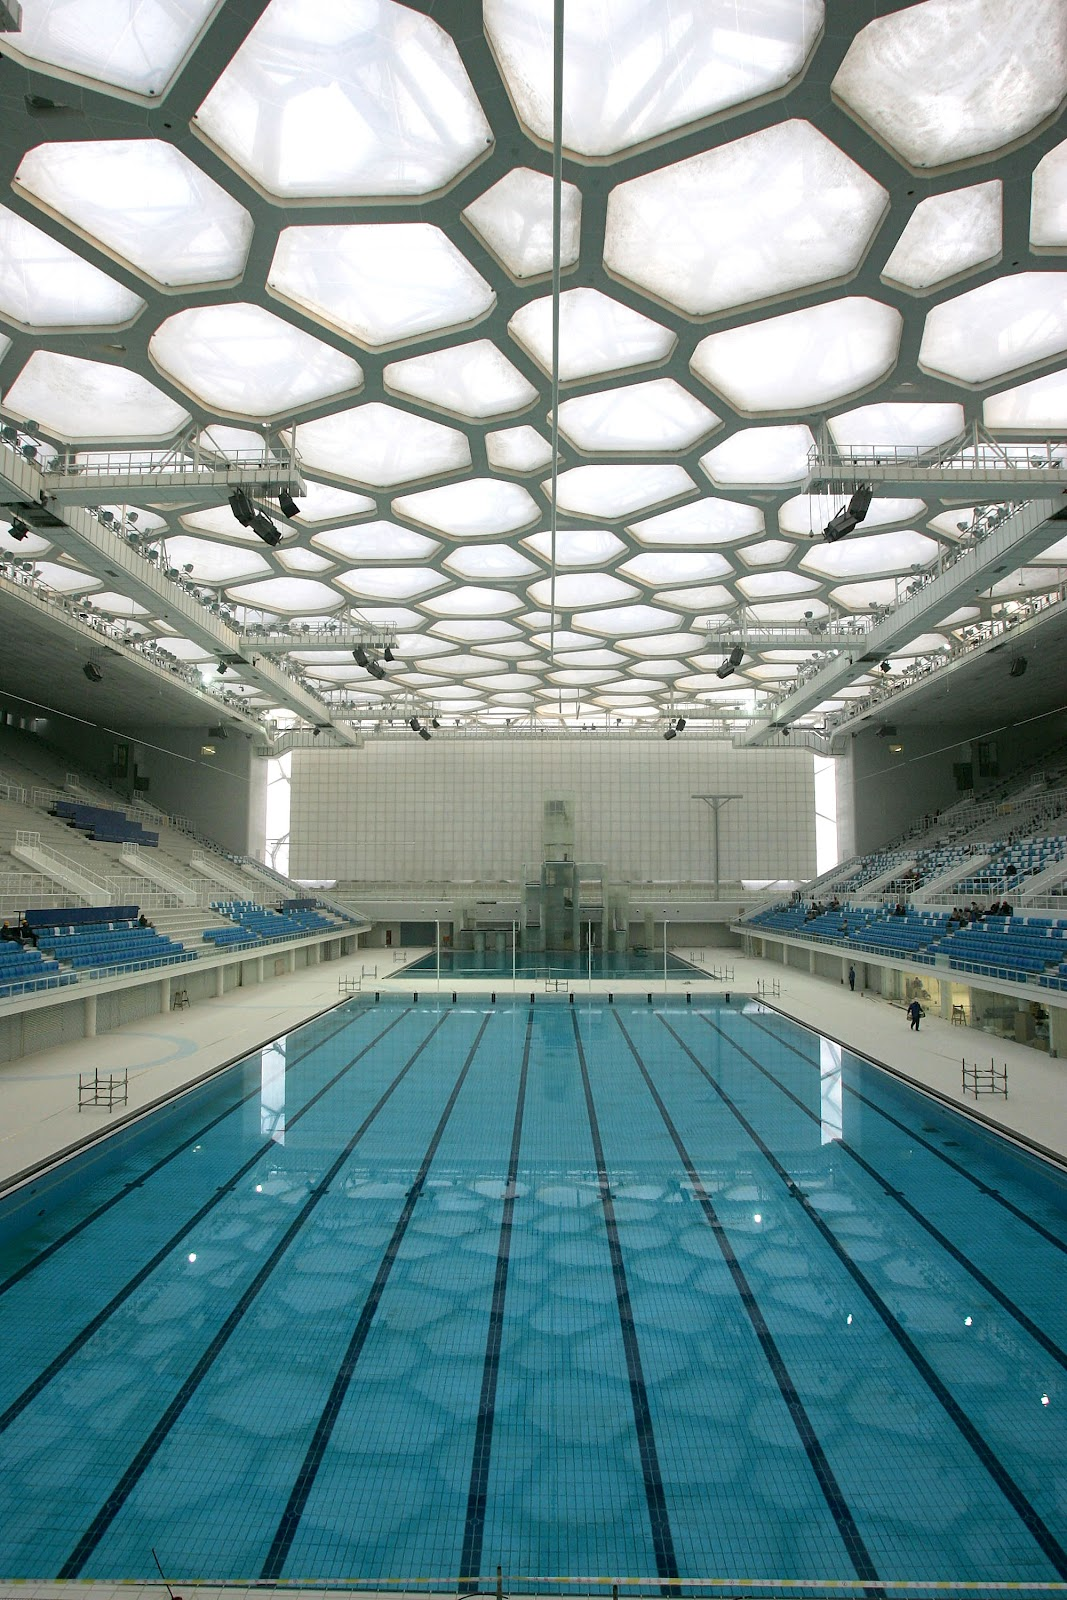 Olympic swimming pool wallpaper wallpapersafari for Beijing swimming pool olympics